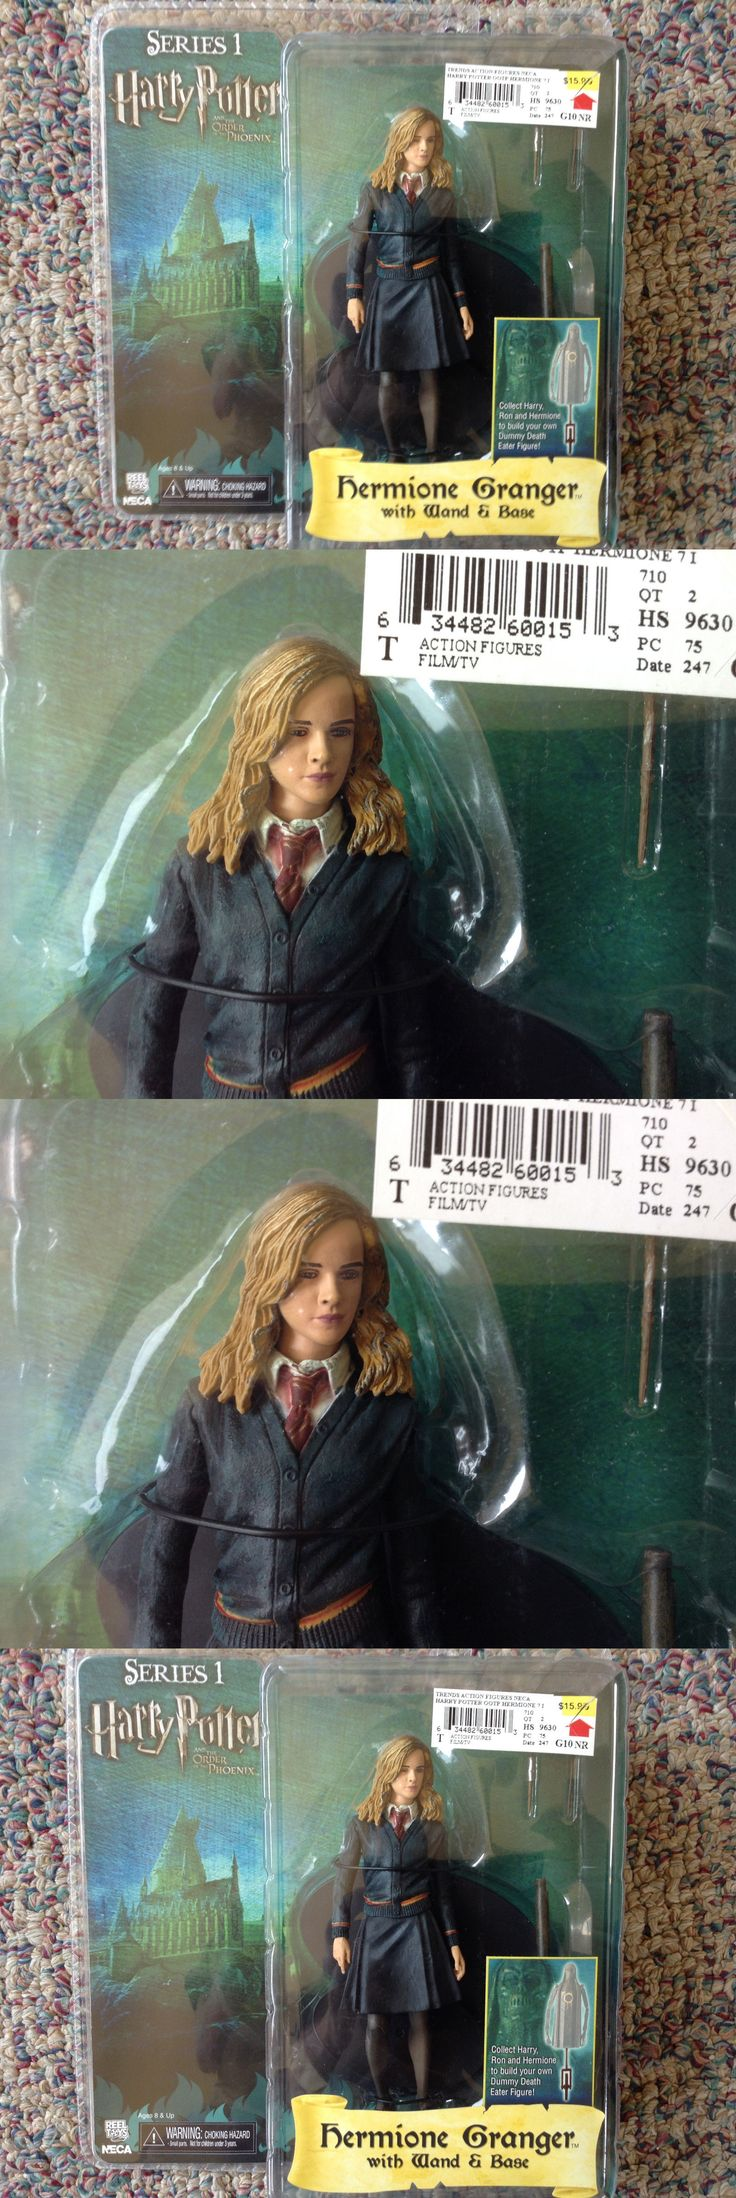 Harry Potter 11077: Harry Potter Series 1 Hermione Granger Action Figure Neca Moc -> BUY IT NOW ONLY: $49.99 on eBay!